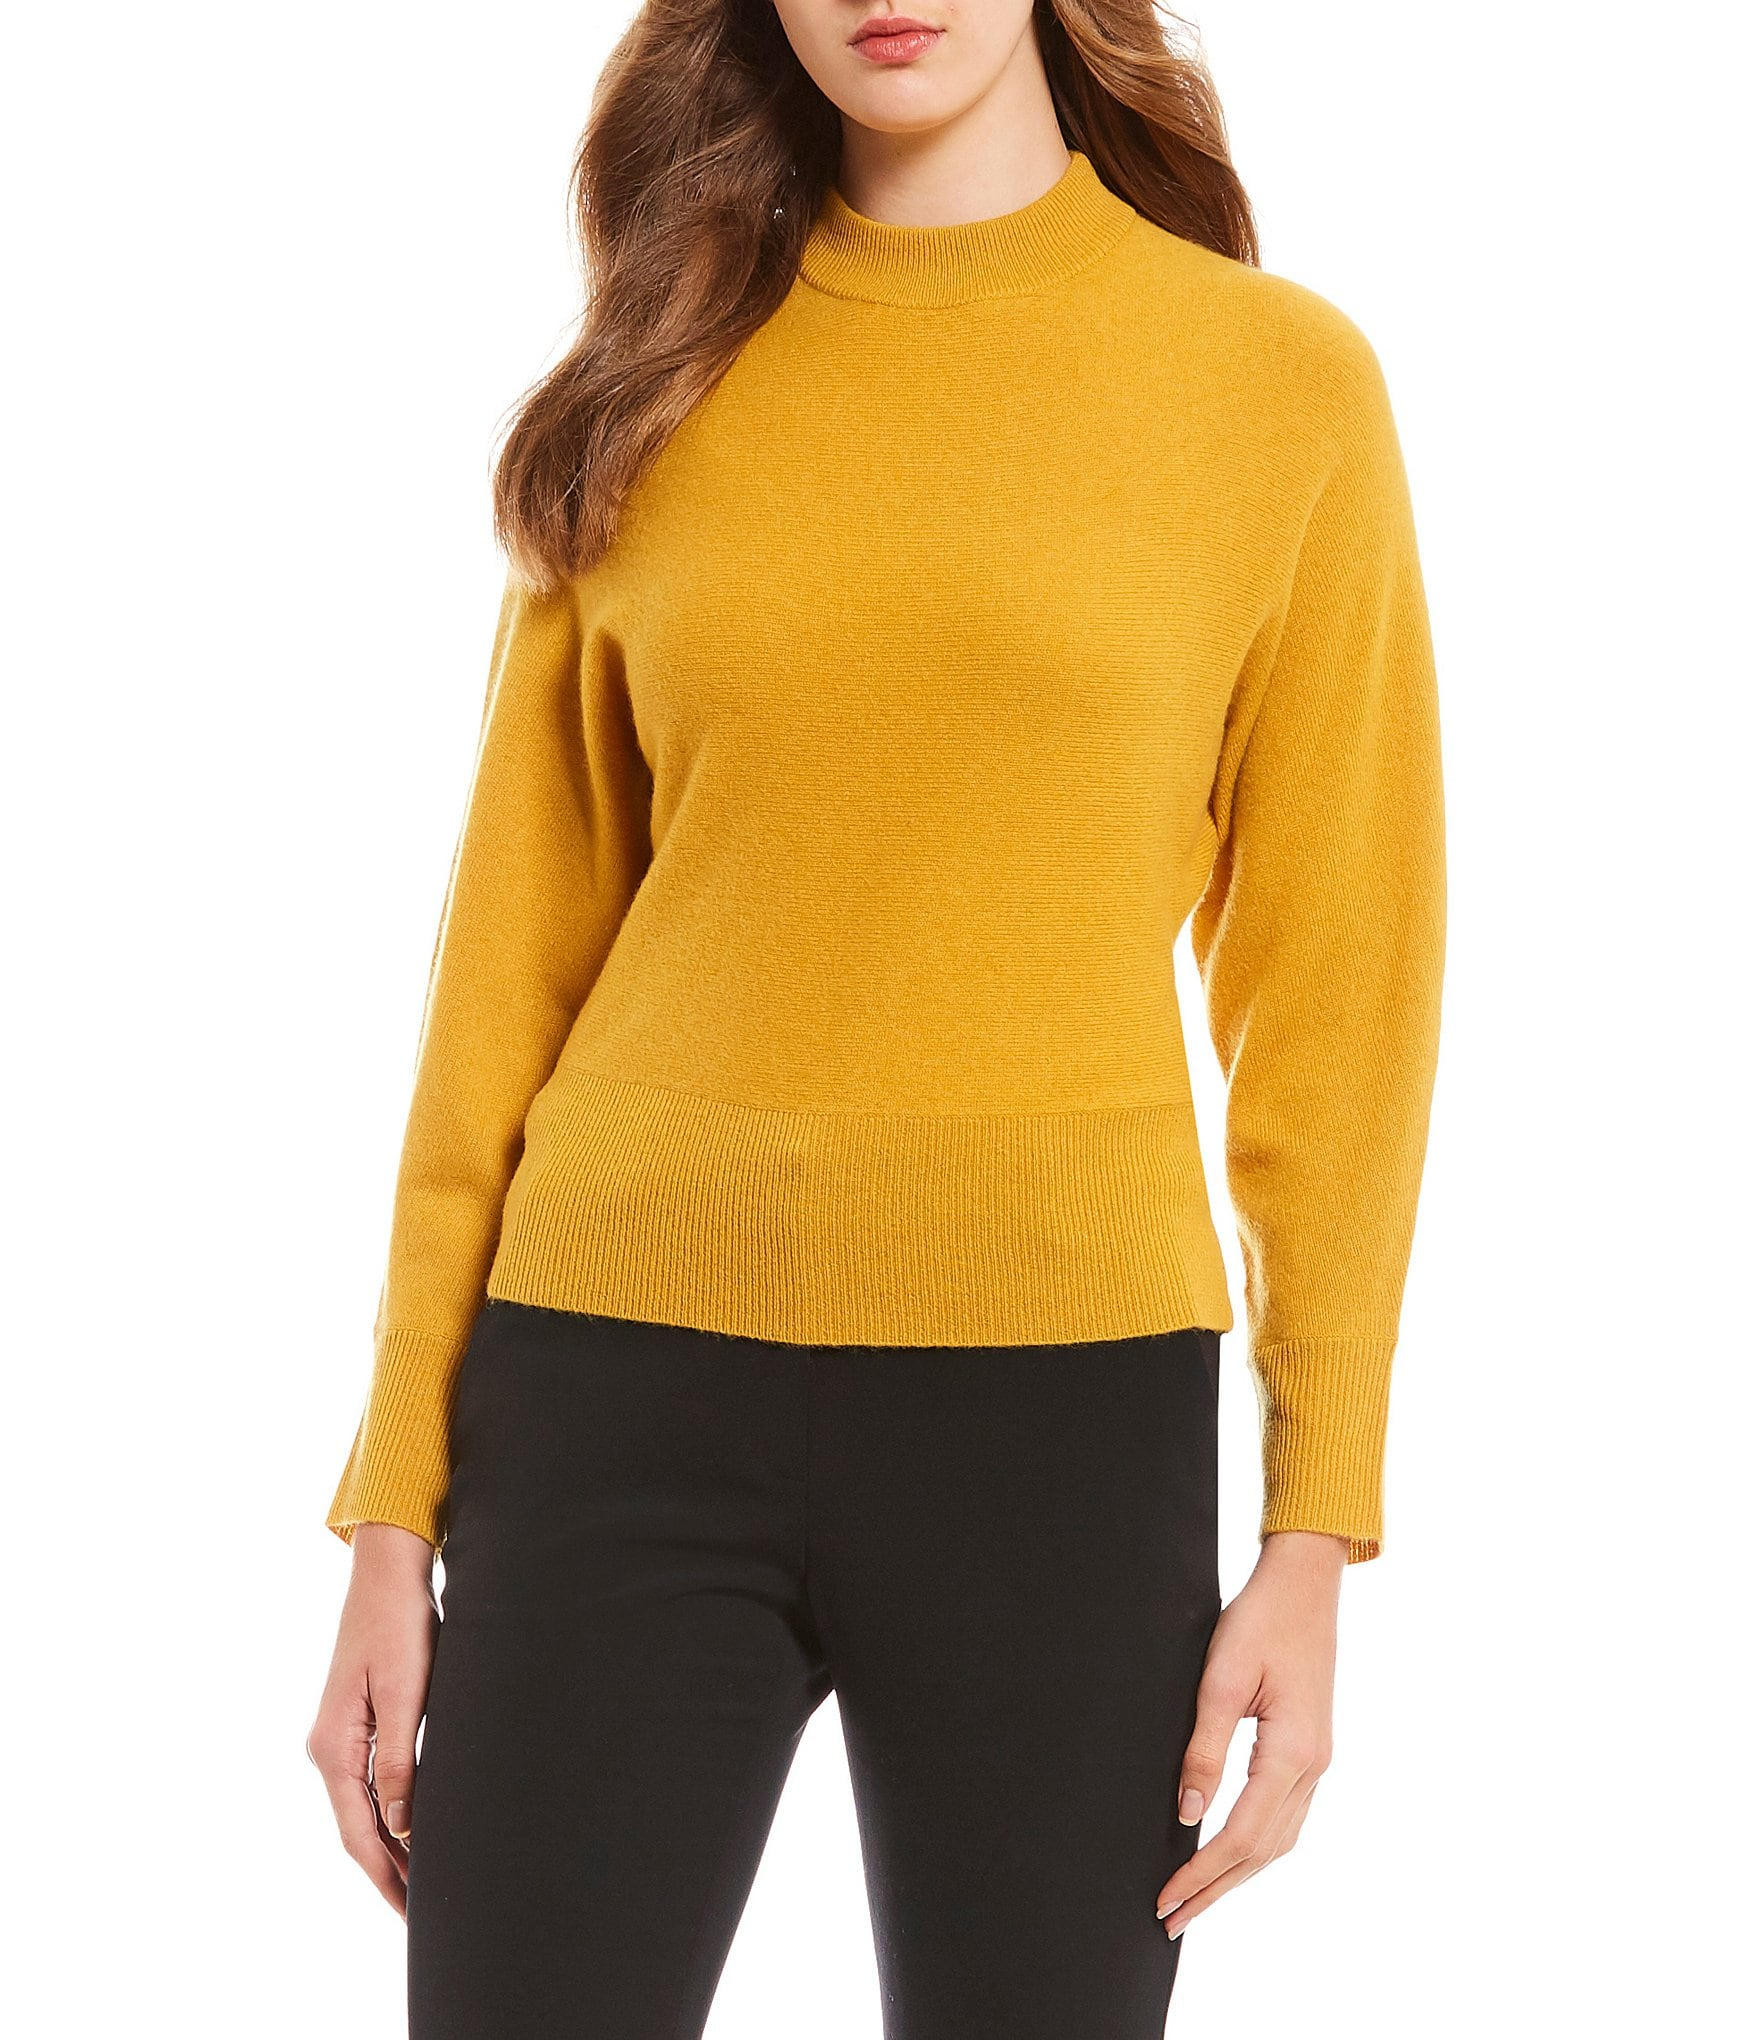 7f4c28bfc12 womens cashmere clothing  Women s Clothing   Apparel